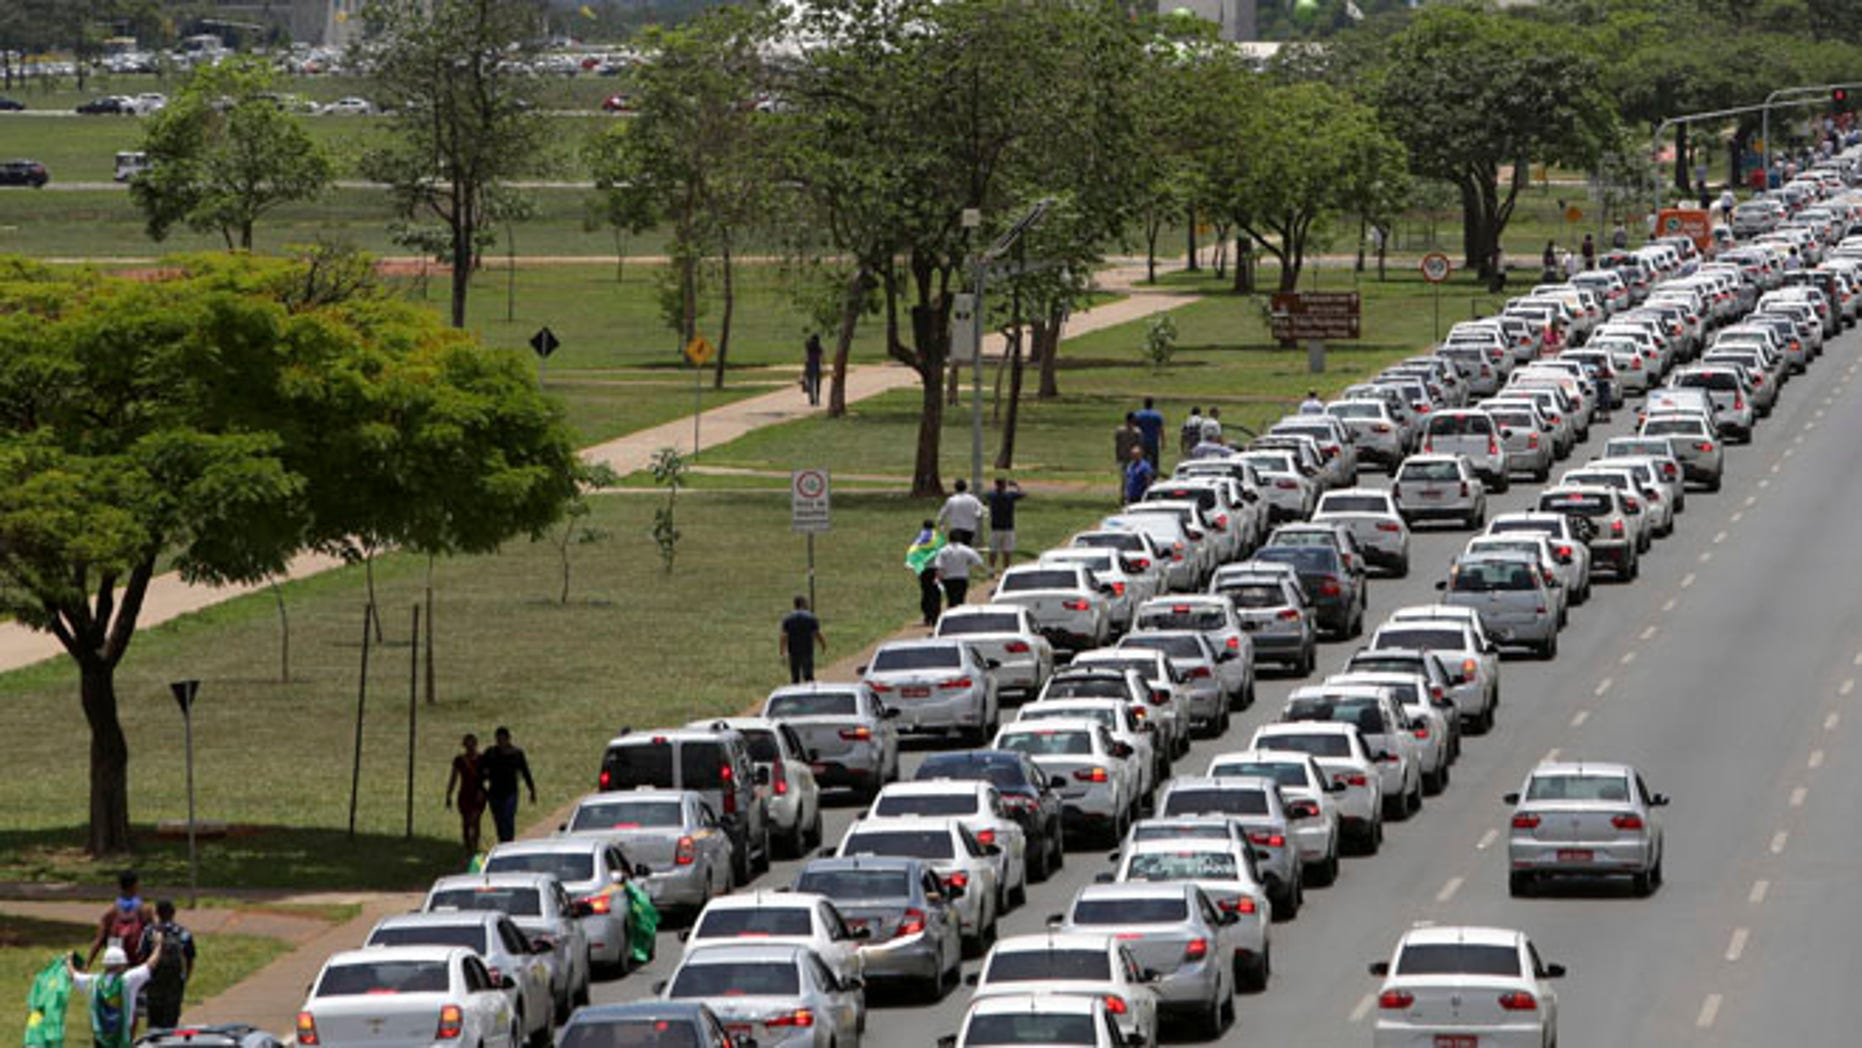 Taxi drivers protest against the online transportation service Uber, in Brasilia, Brazil, Tuesday, Nov. 8, 2016. More than 1 thousand taxi drivers, many in their vehicles, staged a protest in front of Congress demanding that it prohibits the U.S. based company from operating in Latin America's largest nation. (AP Photo/Eraldo Peres)